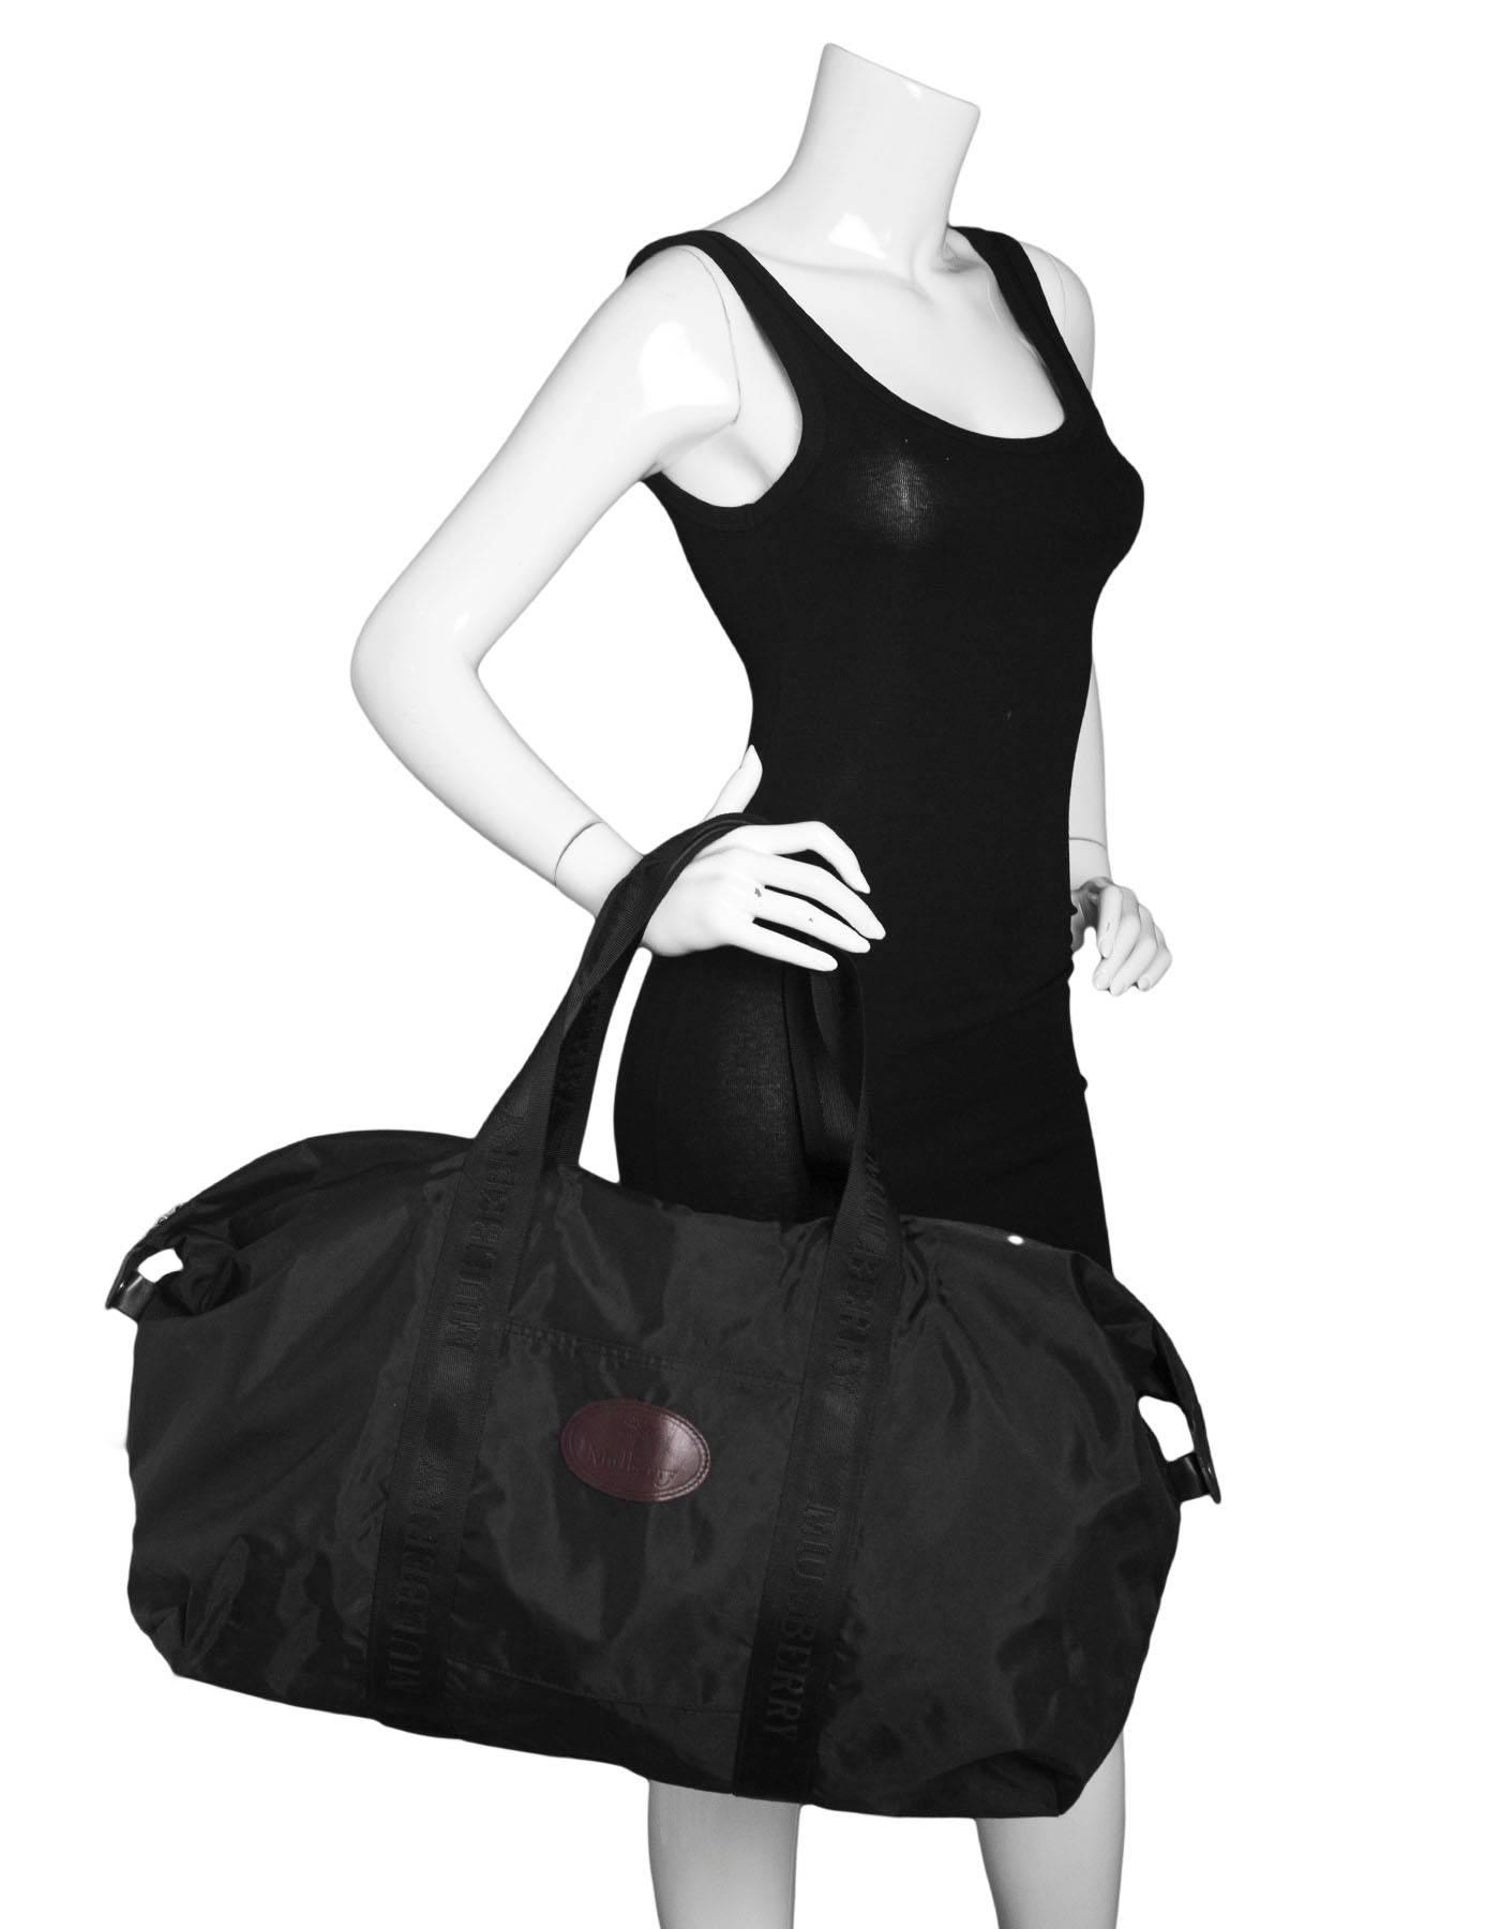 Mulberry Black Nylon Duffle Travel Bag For Sale at 1stdibs d13bfedf5c11f